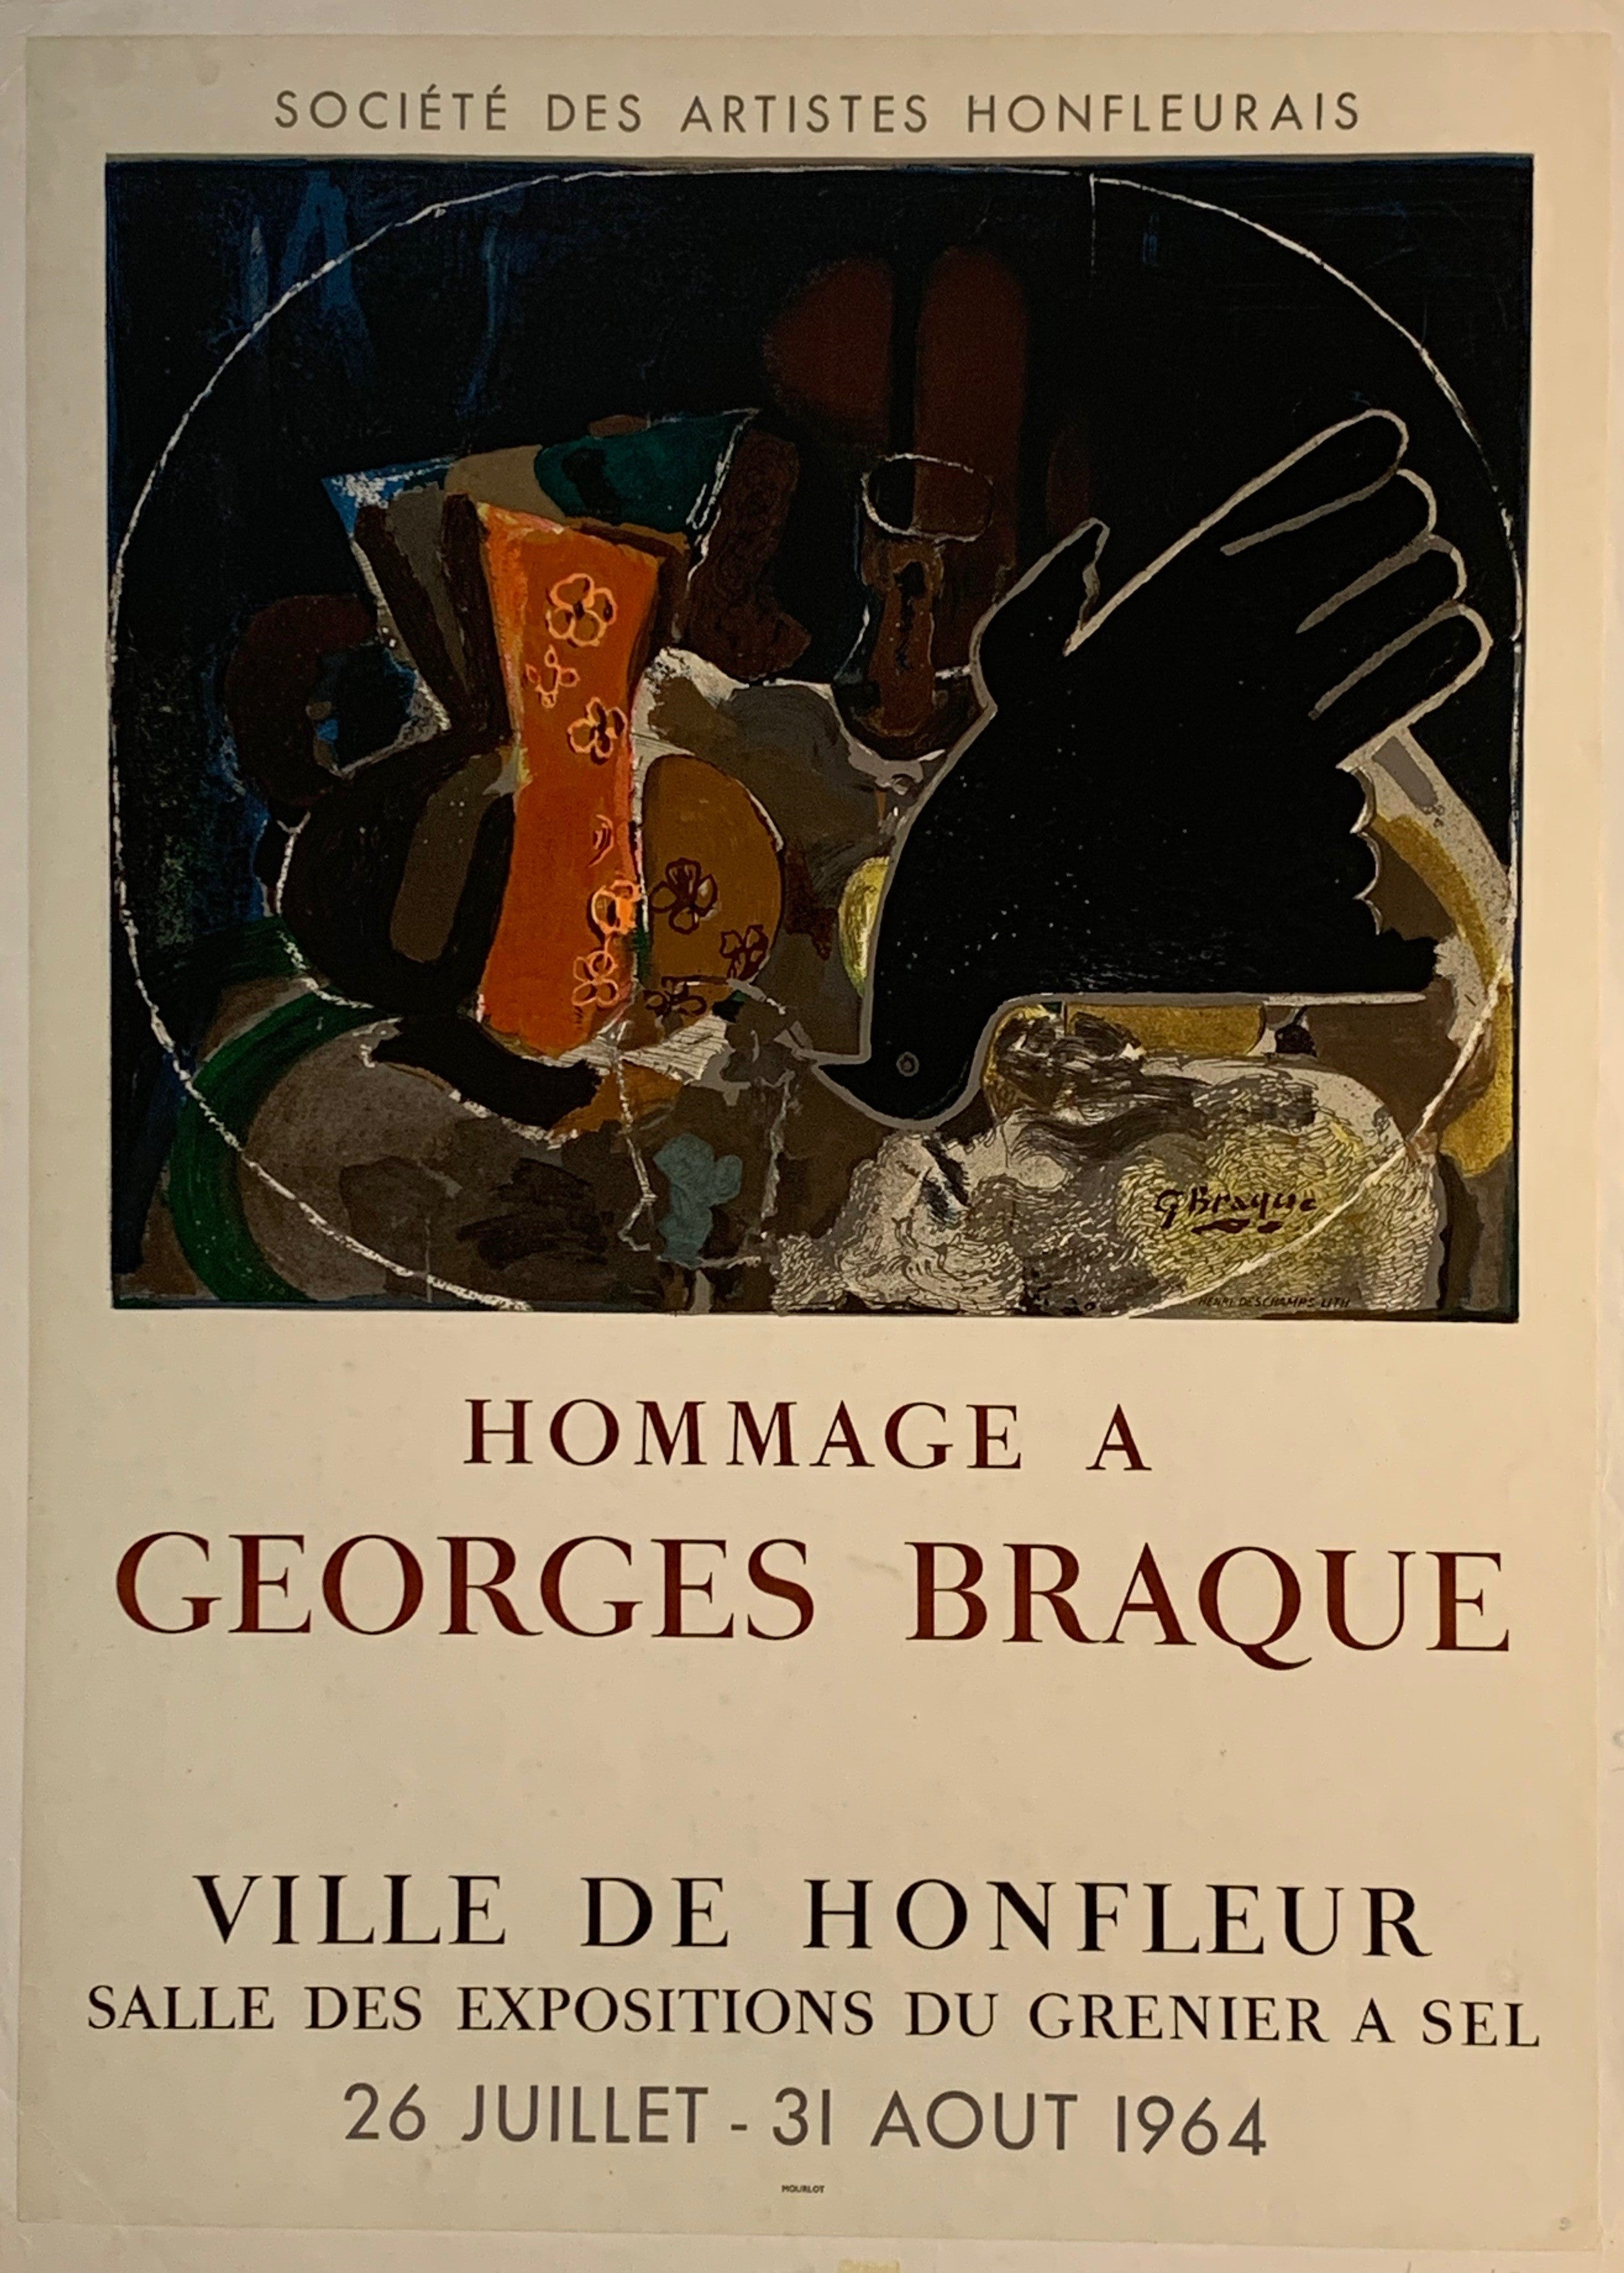 Hommage a Georges Braque